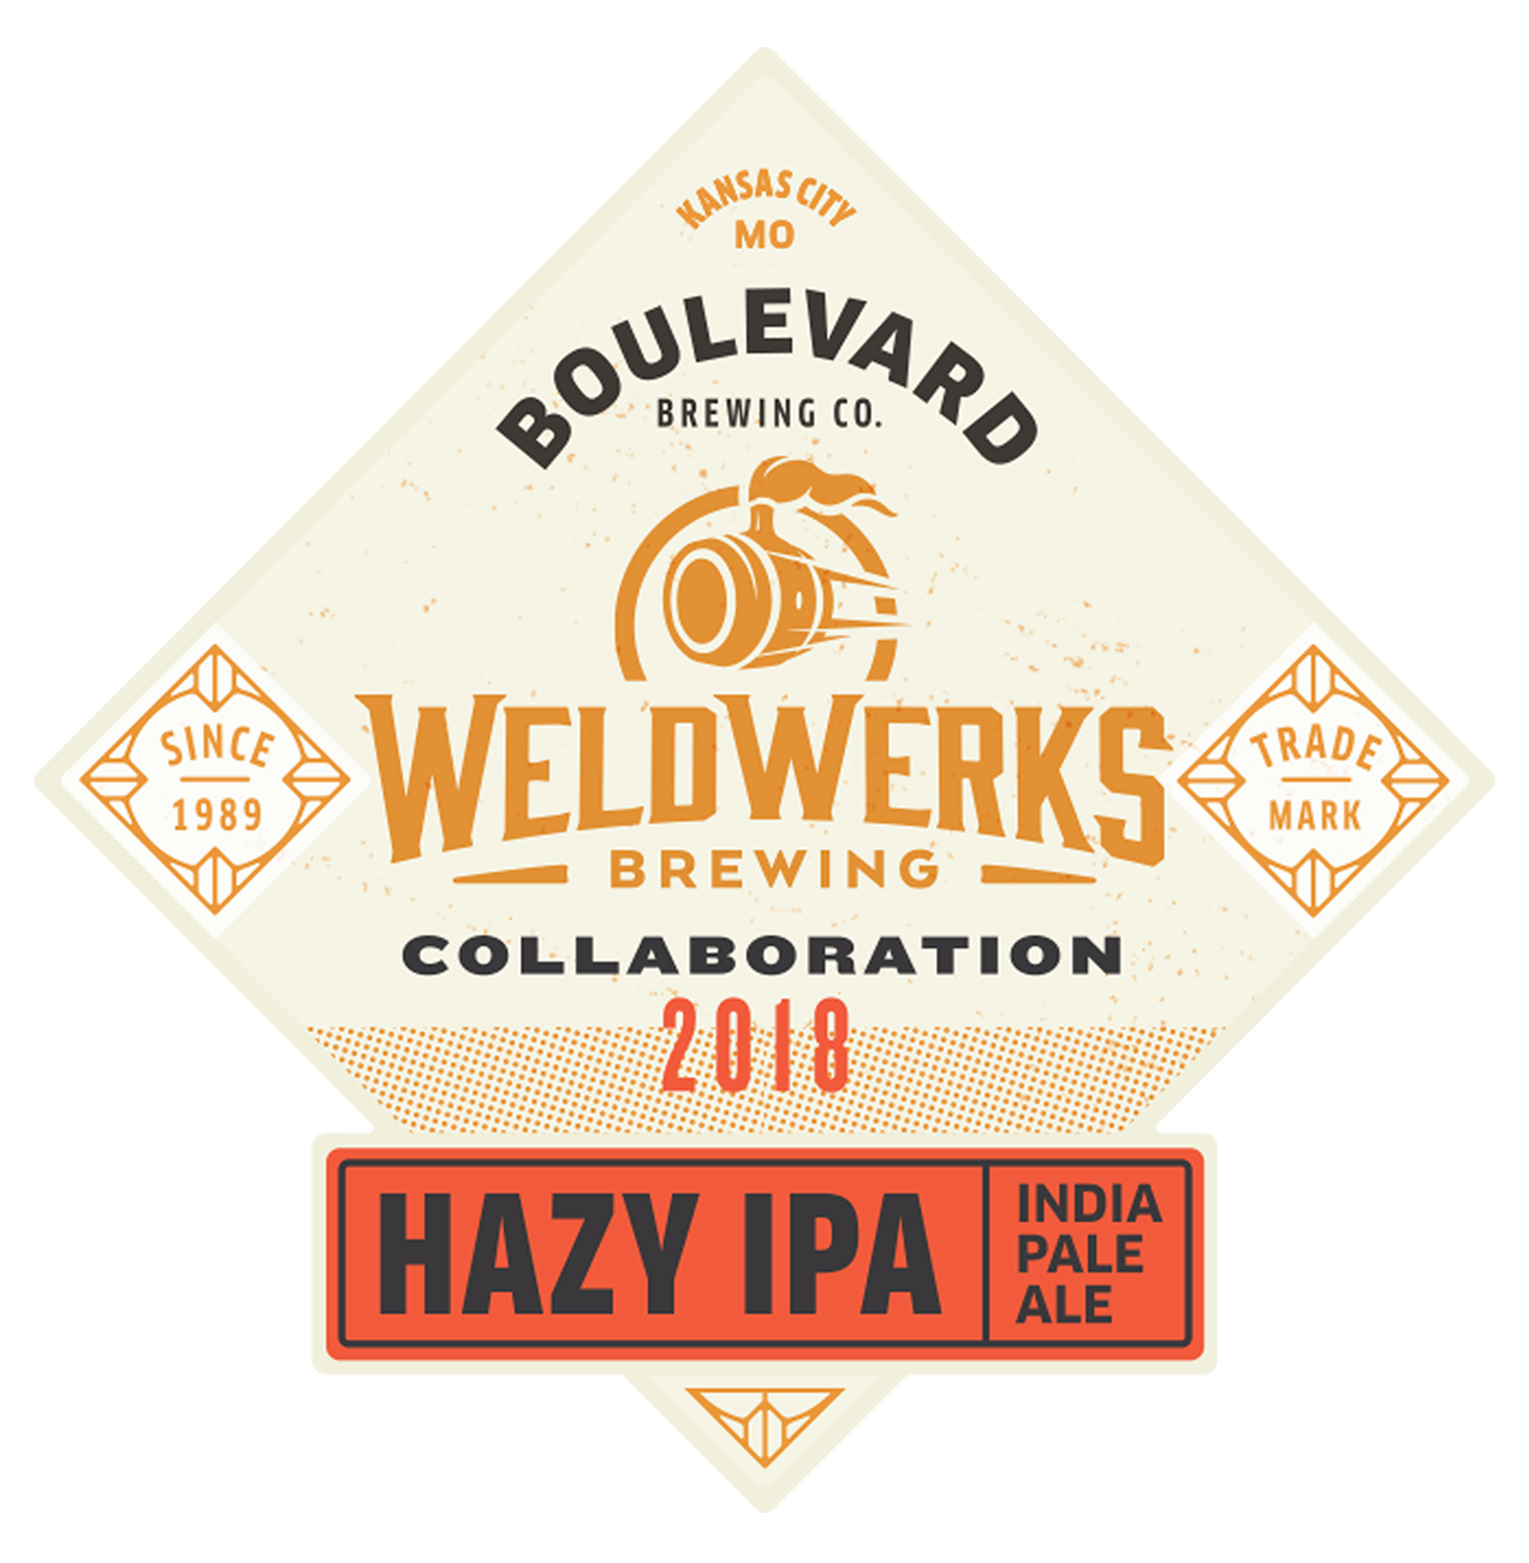 WeldWerks Brewing Collaboration